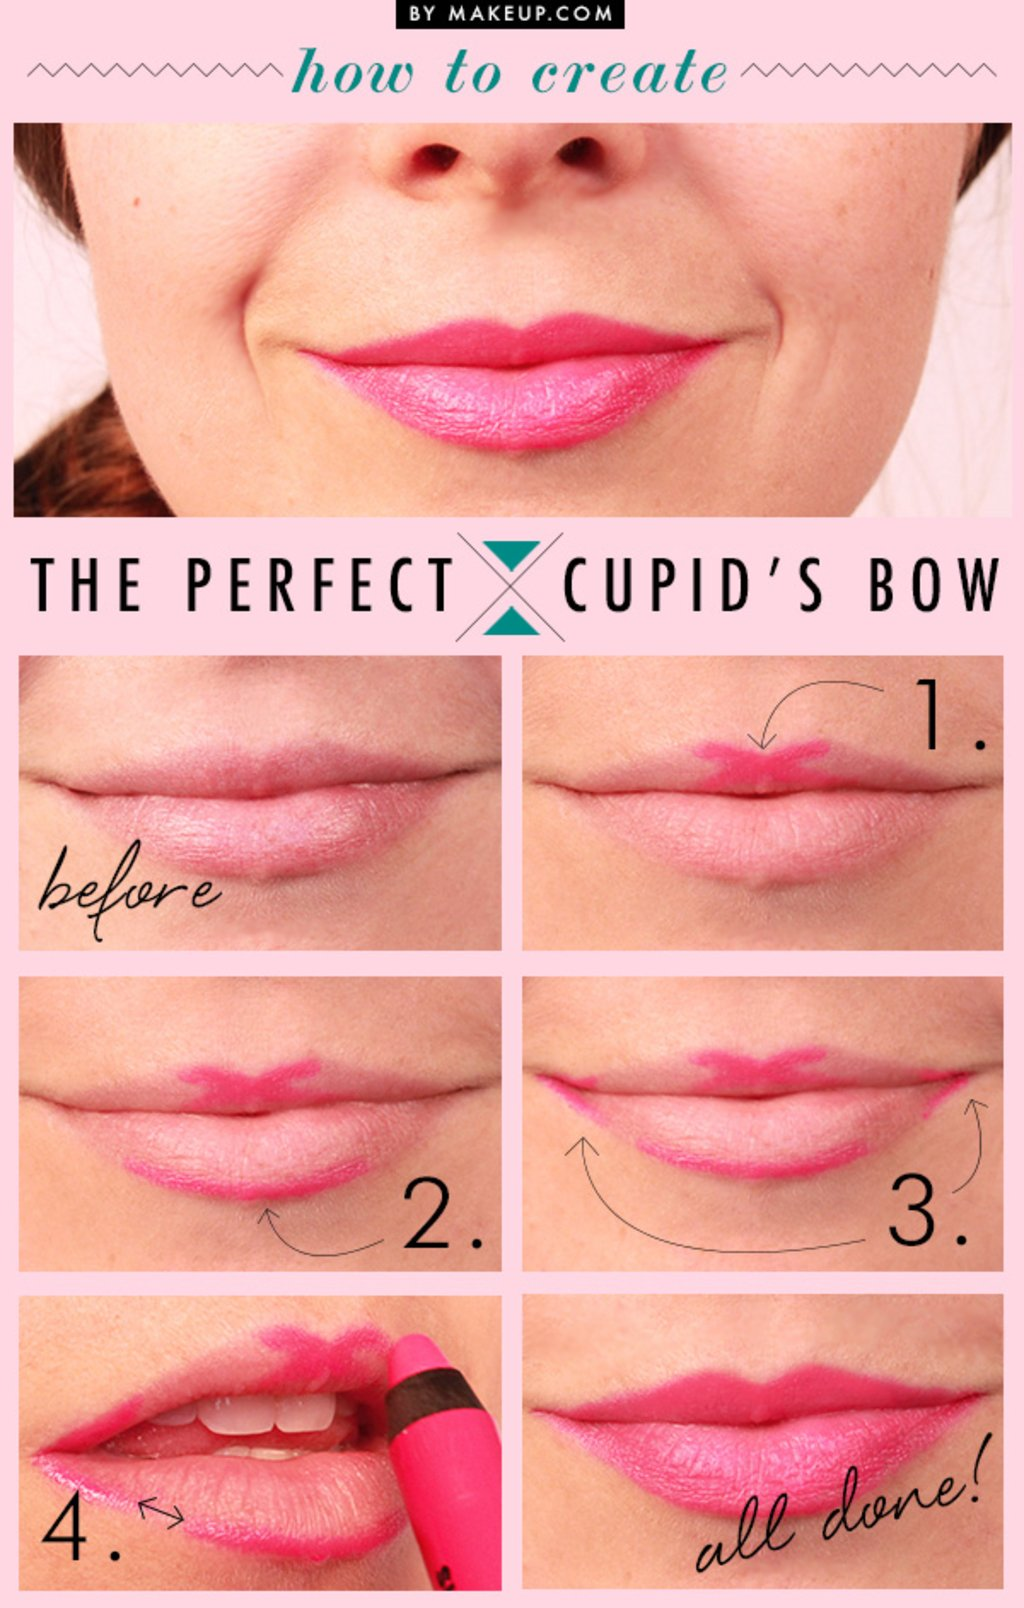 How to create the perfect Cupid's Bow Photo Makeup.comPhoto Makeup.com